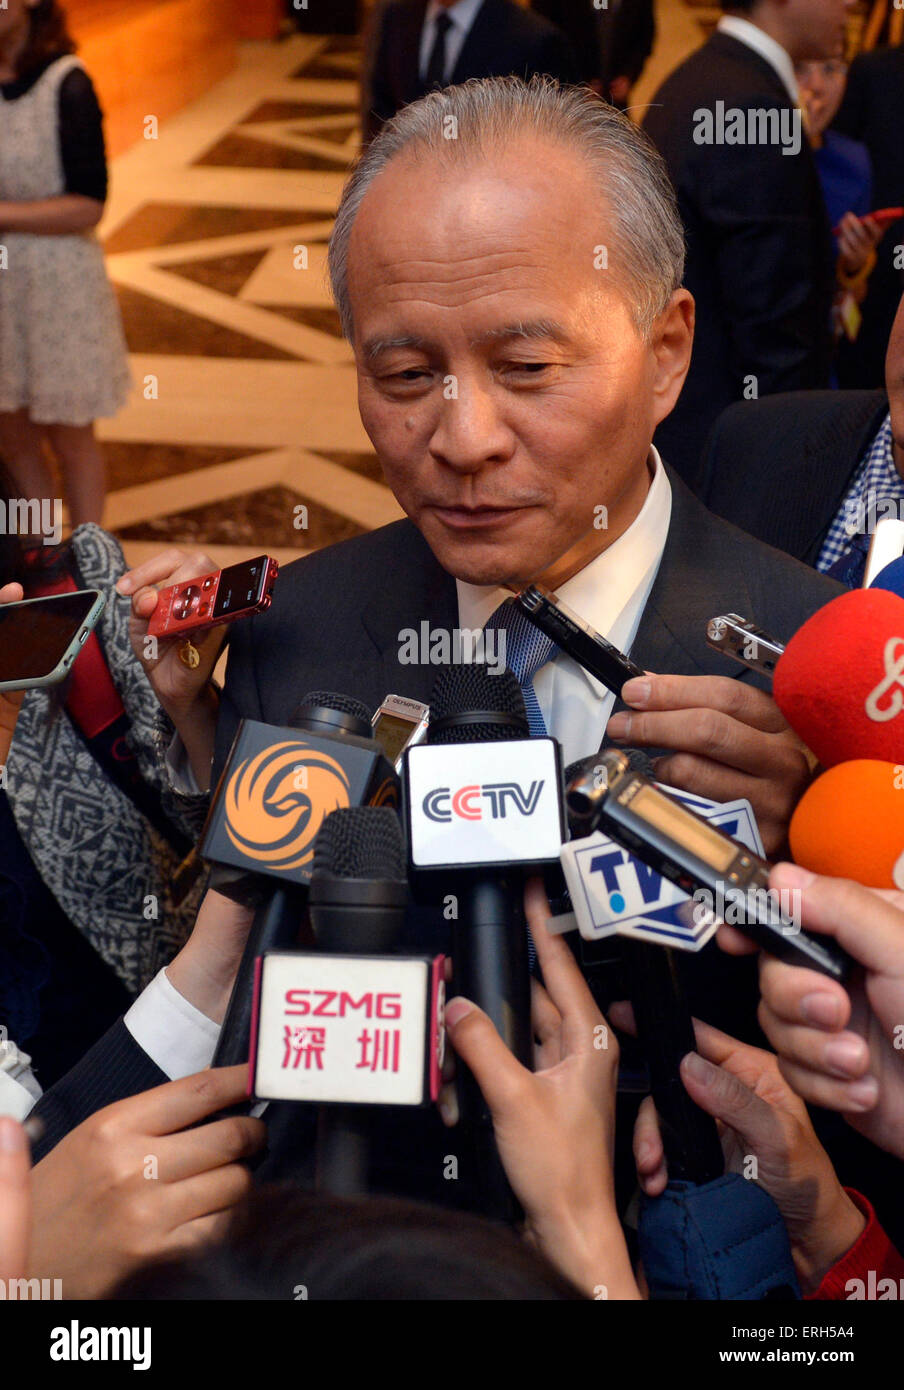 Washington, USA. 2nd June, 2015. Chinese Ambassador to the United States Cui Tiankai speaks to Chinese reporters - Stock Image